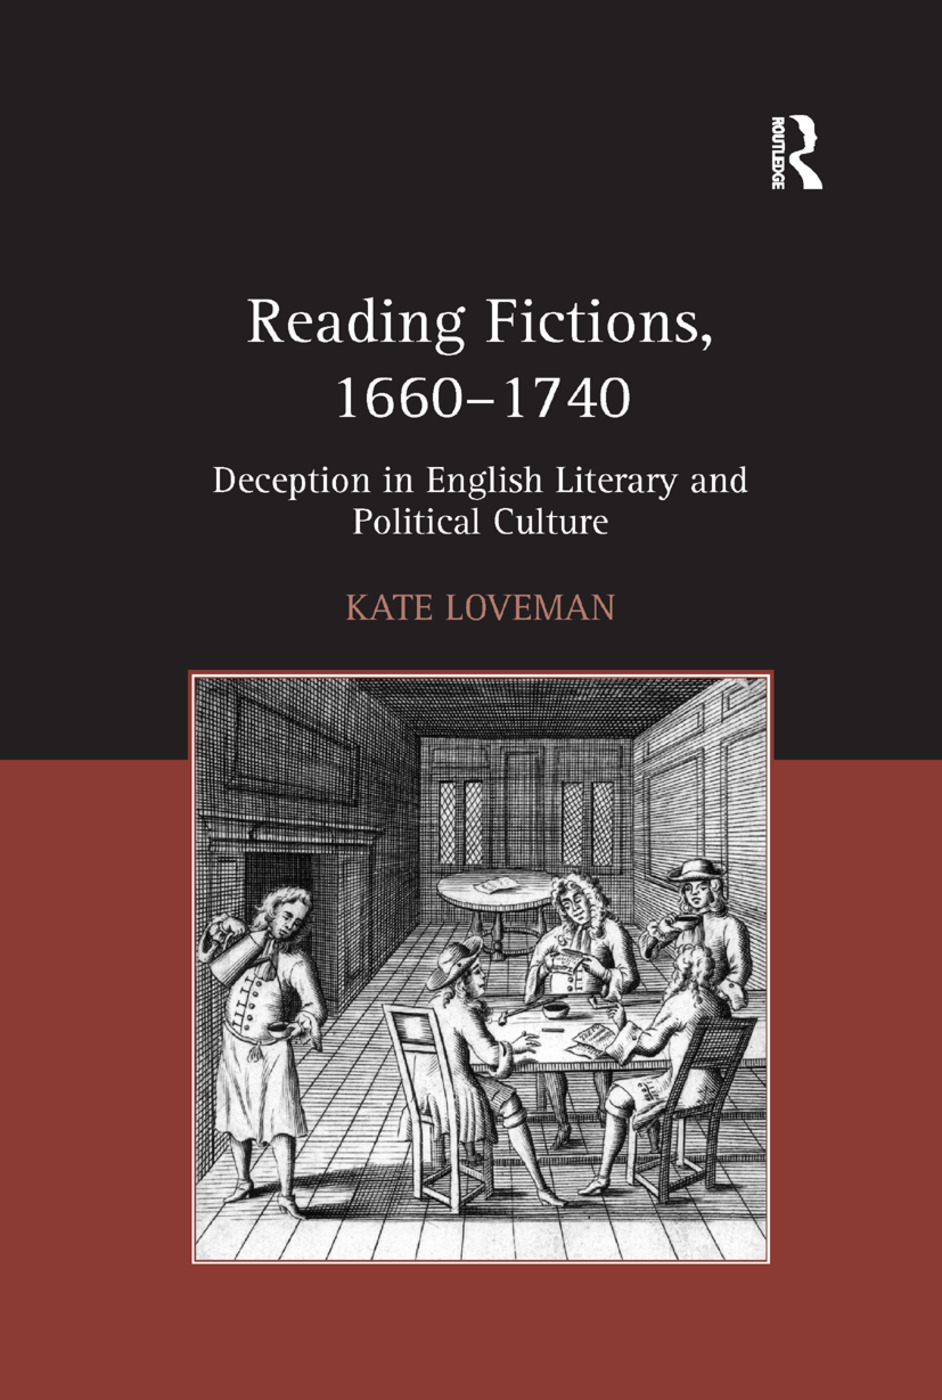 Reading Fictions, 1660-1740: Deception in English Literary and Political Culture book cover